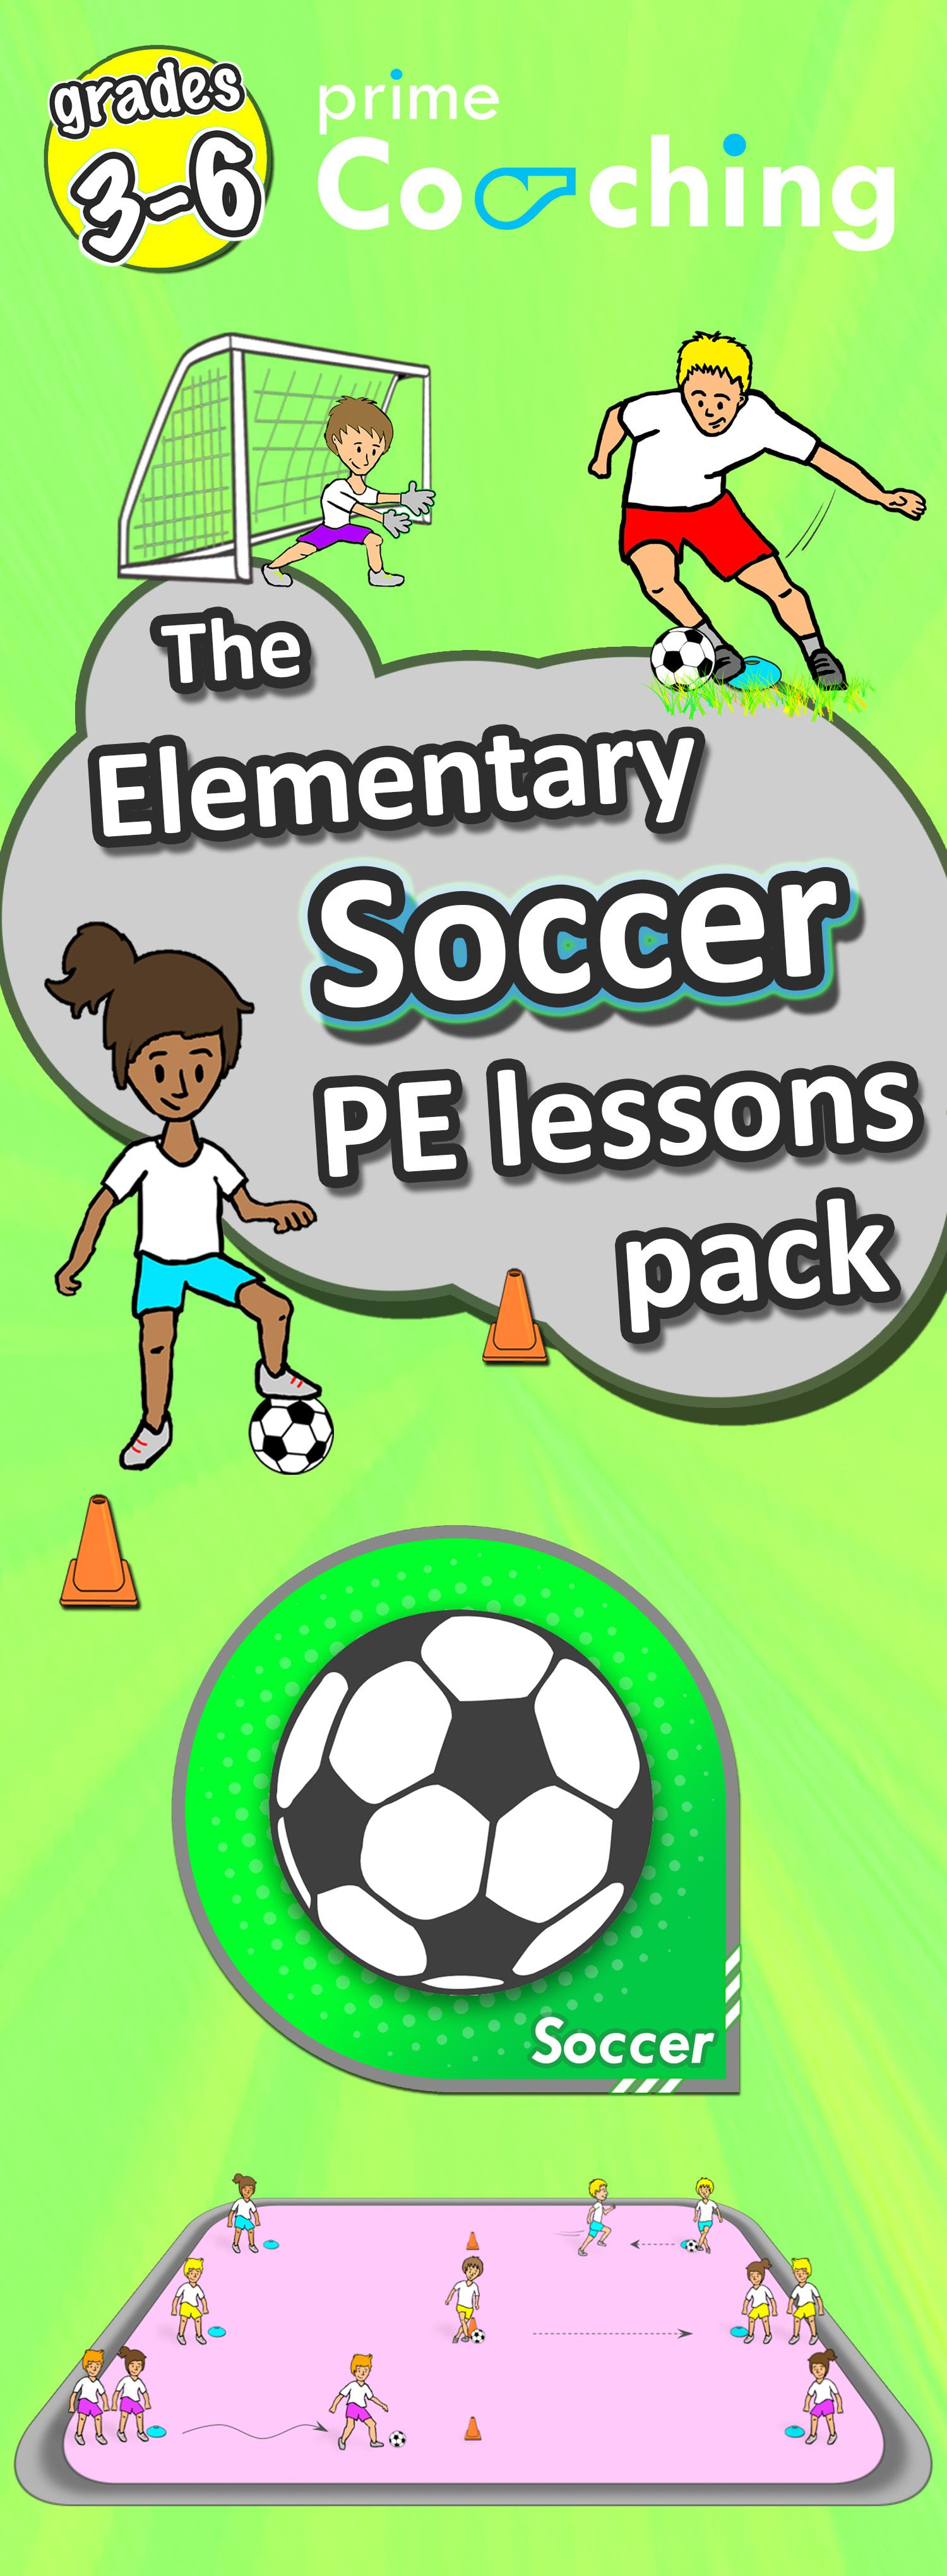 Soccer Pe Lessons Sport Unit With Plans Drills Skills Games For Grades 3 6 Soccer Games For Kids Soccer Drills For Kids Soccer Skills